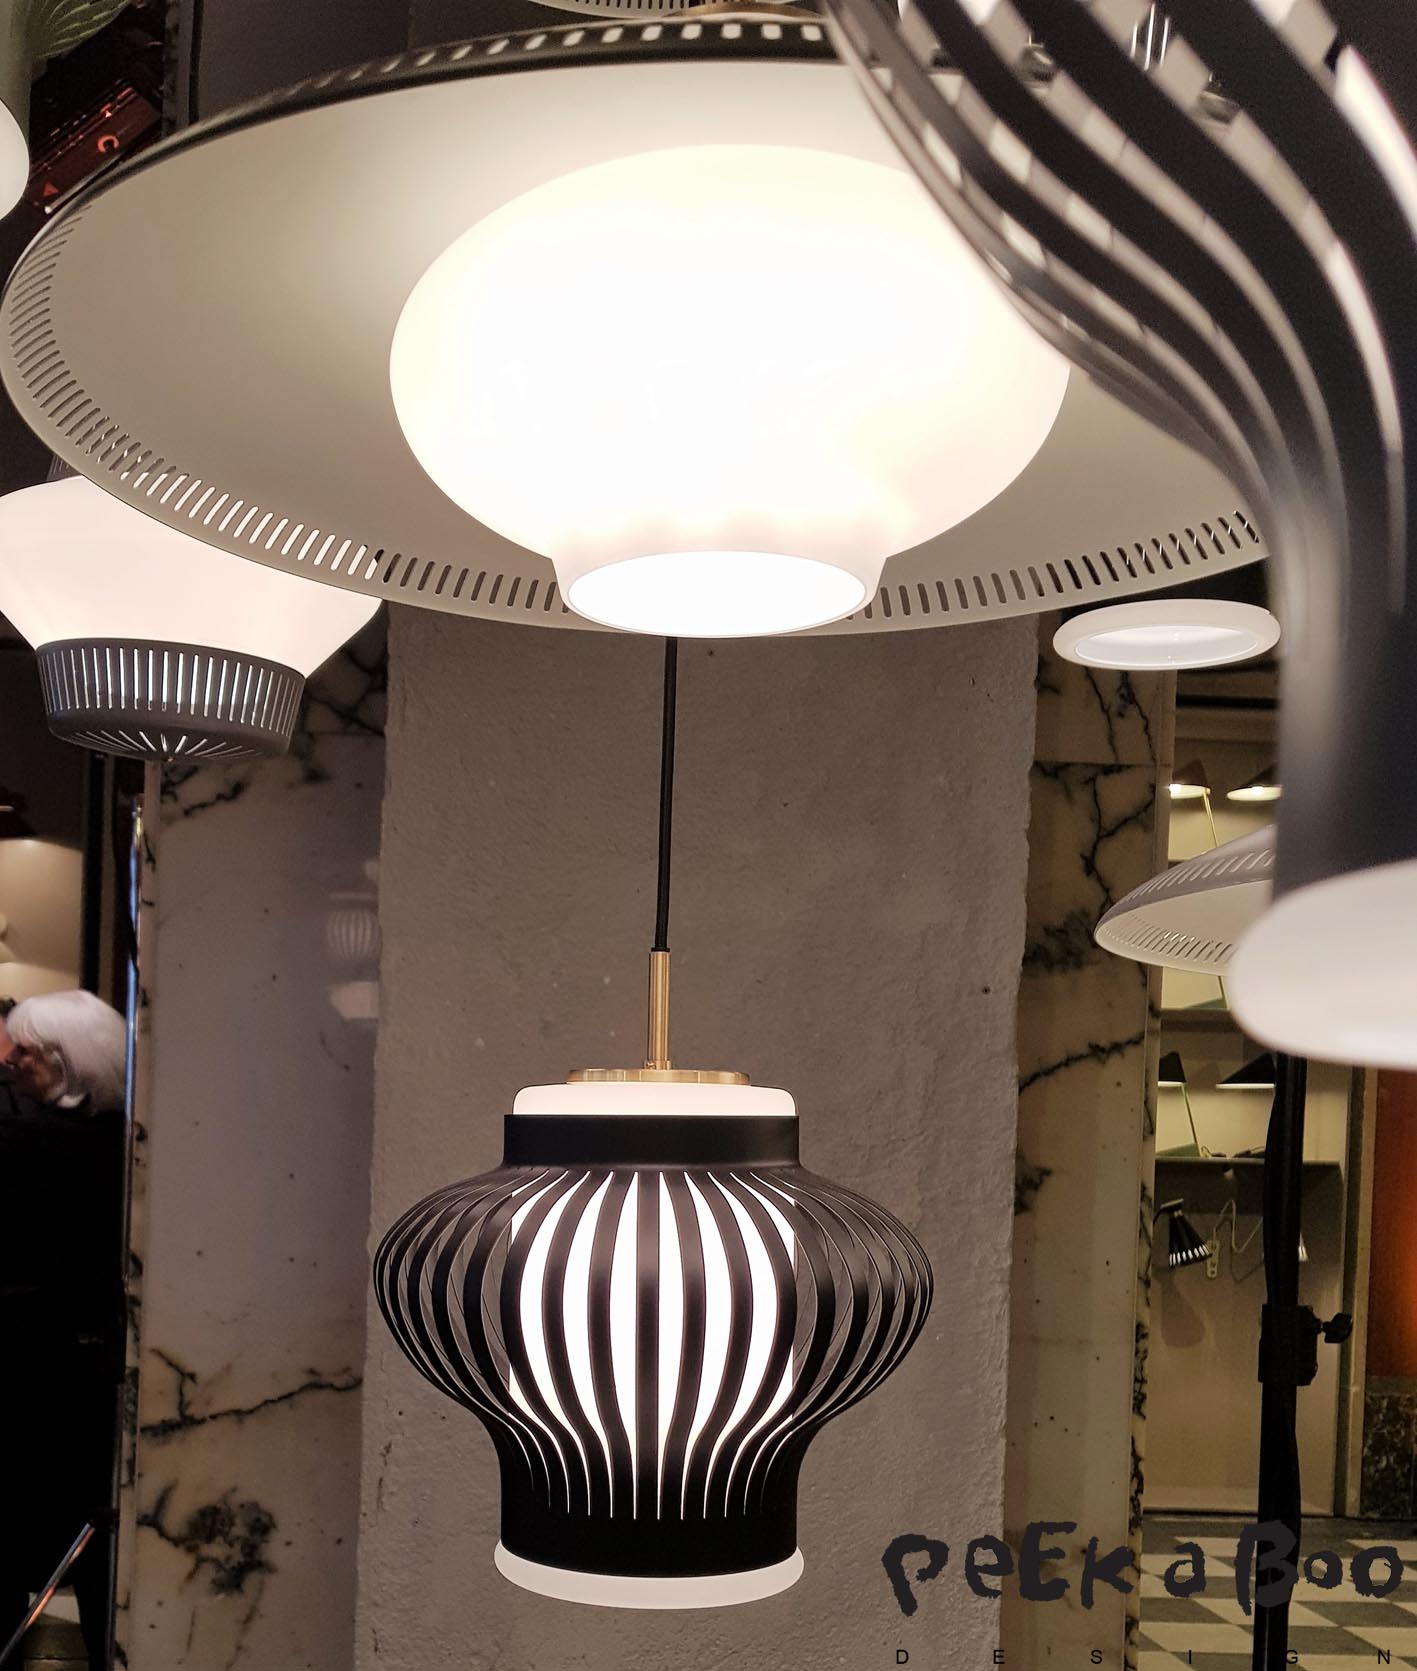 Beautiful lamps from Warm Nordic designed by Svend Aage Holm